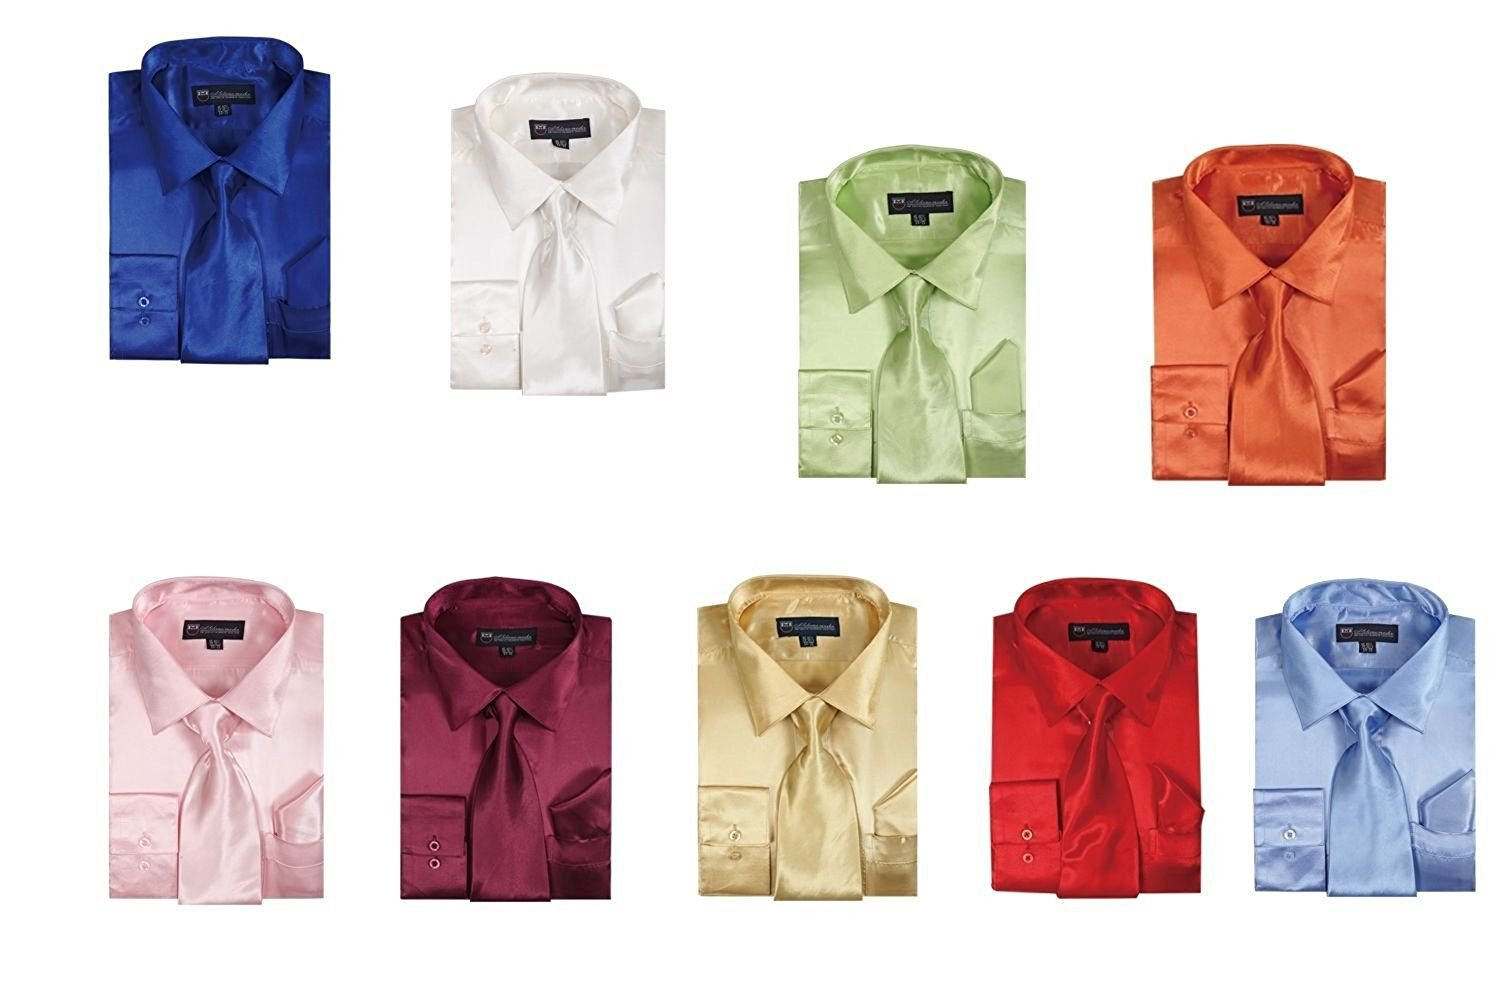 515afeddb Get Quotations · Milano Moda Satin Classic Dress Shirts with Tie & Hankie  SG08 , Purple